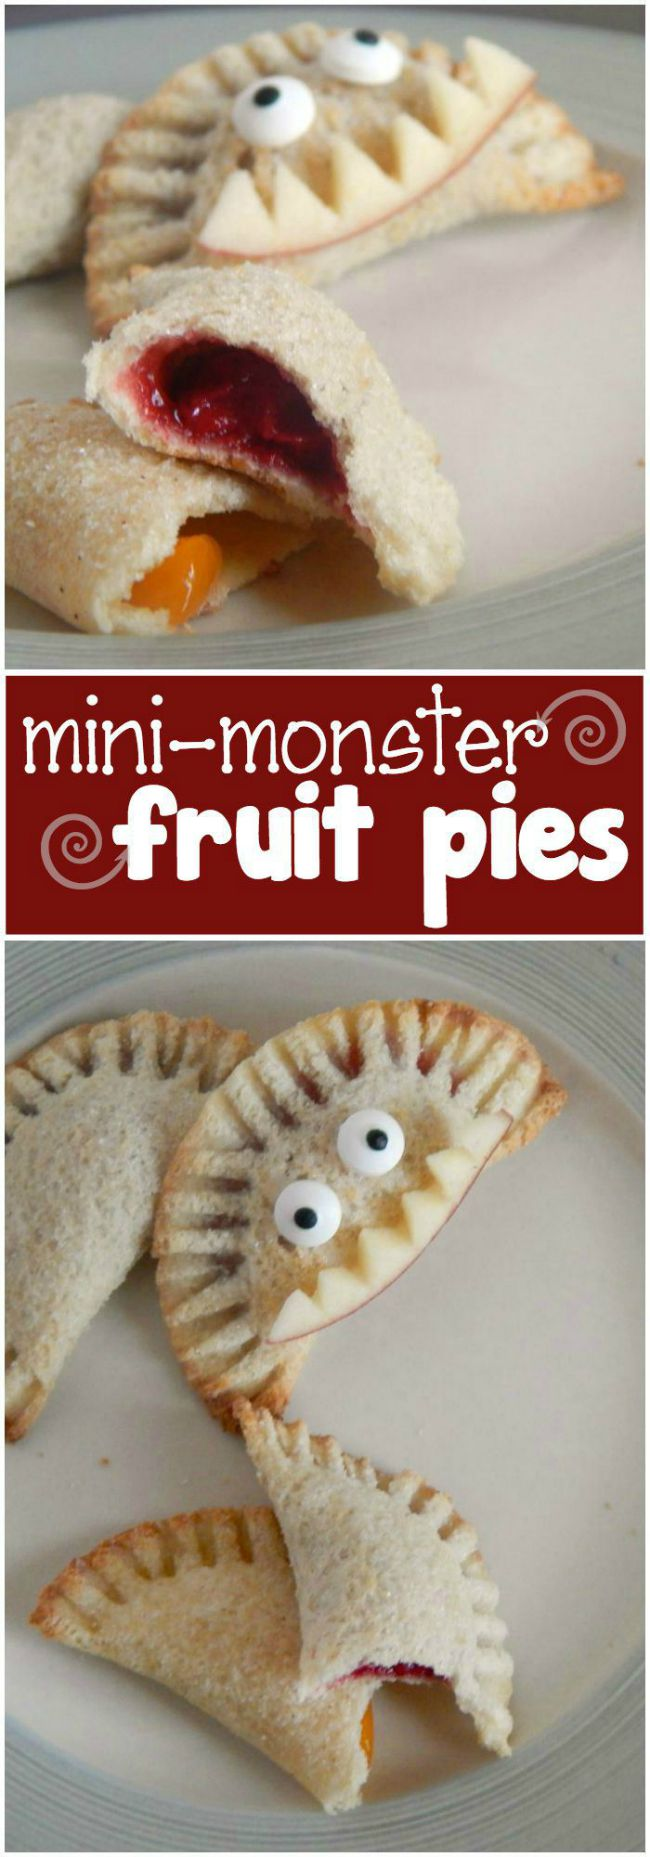 mini monster fruit pies